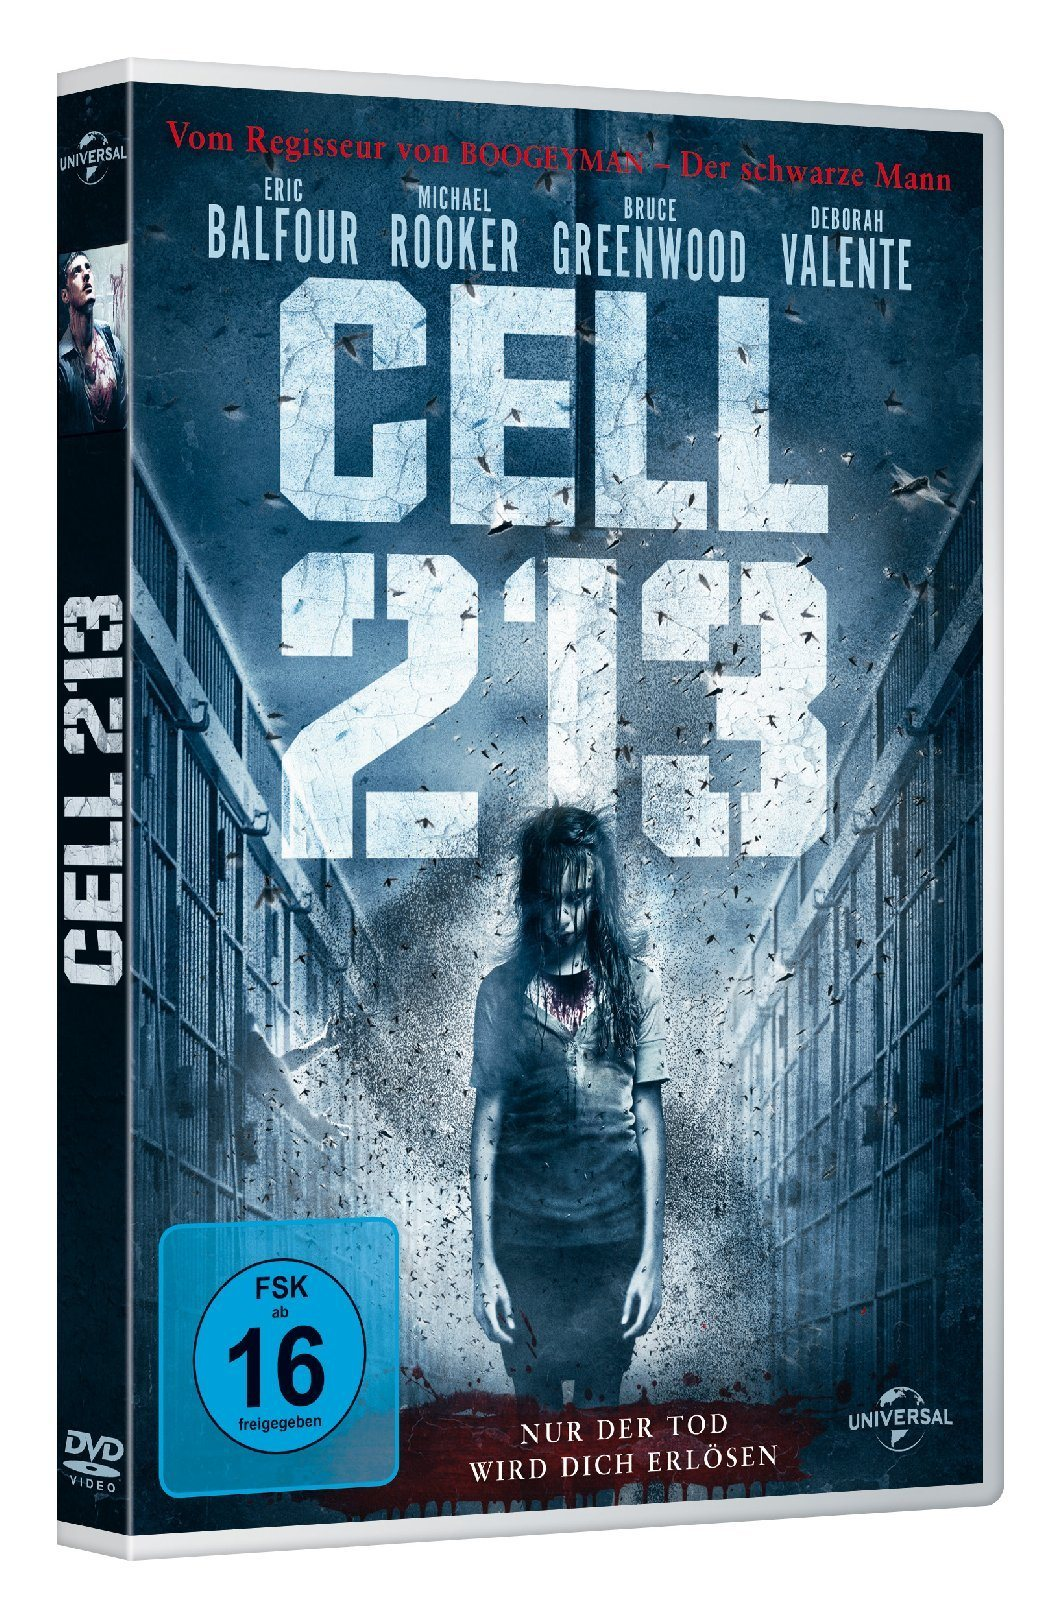 Universal Cell 213 »DVD«